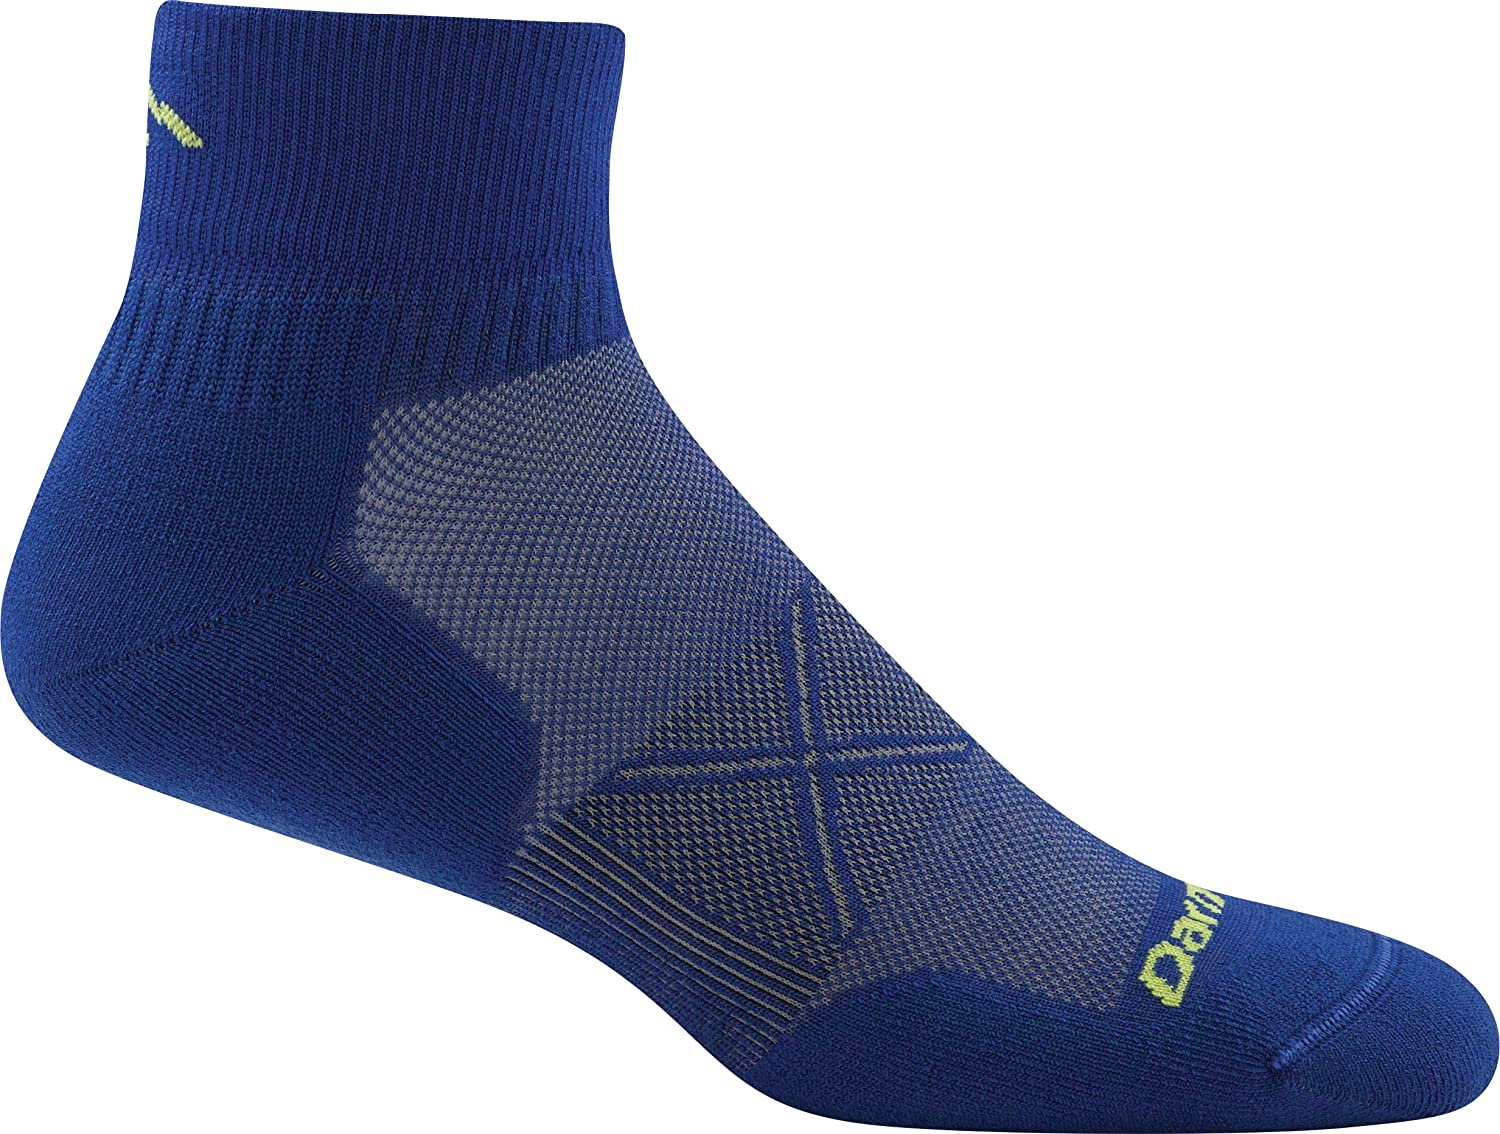 Darn Tough Men's Vertex 1/4 UL Black socks M OS